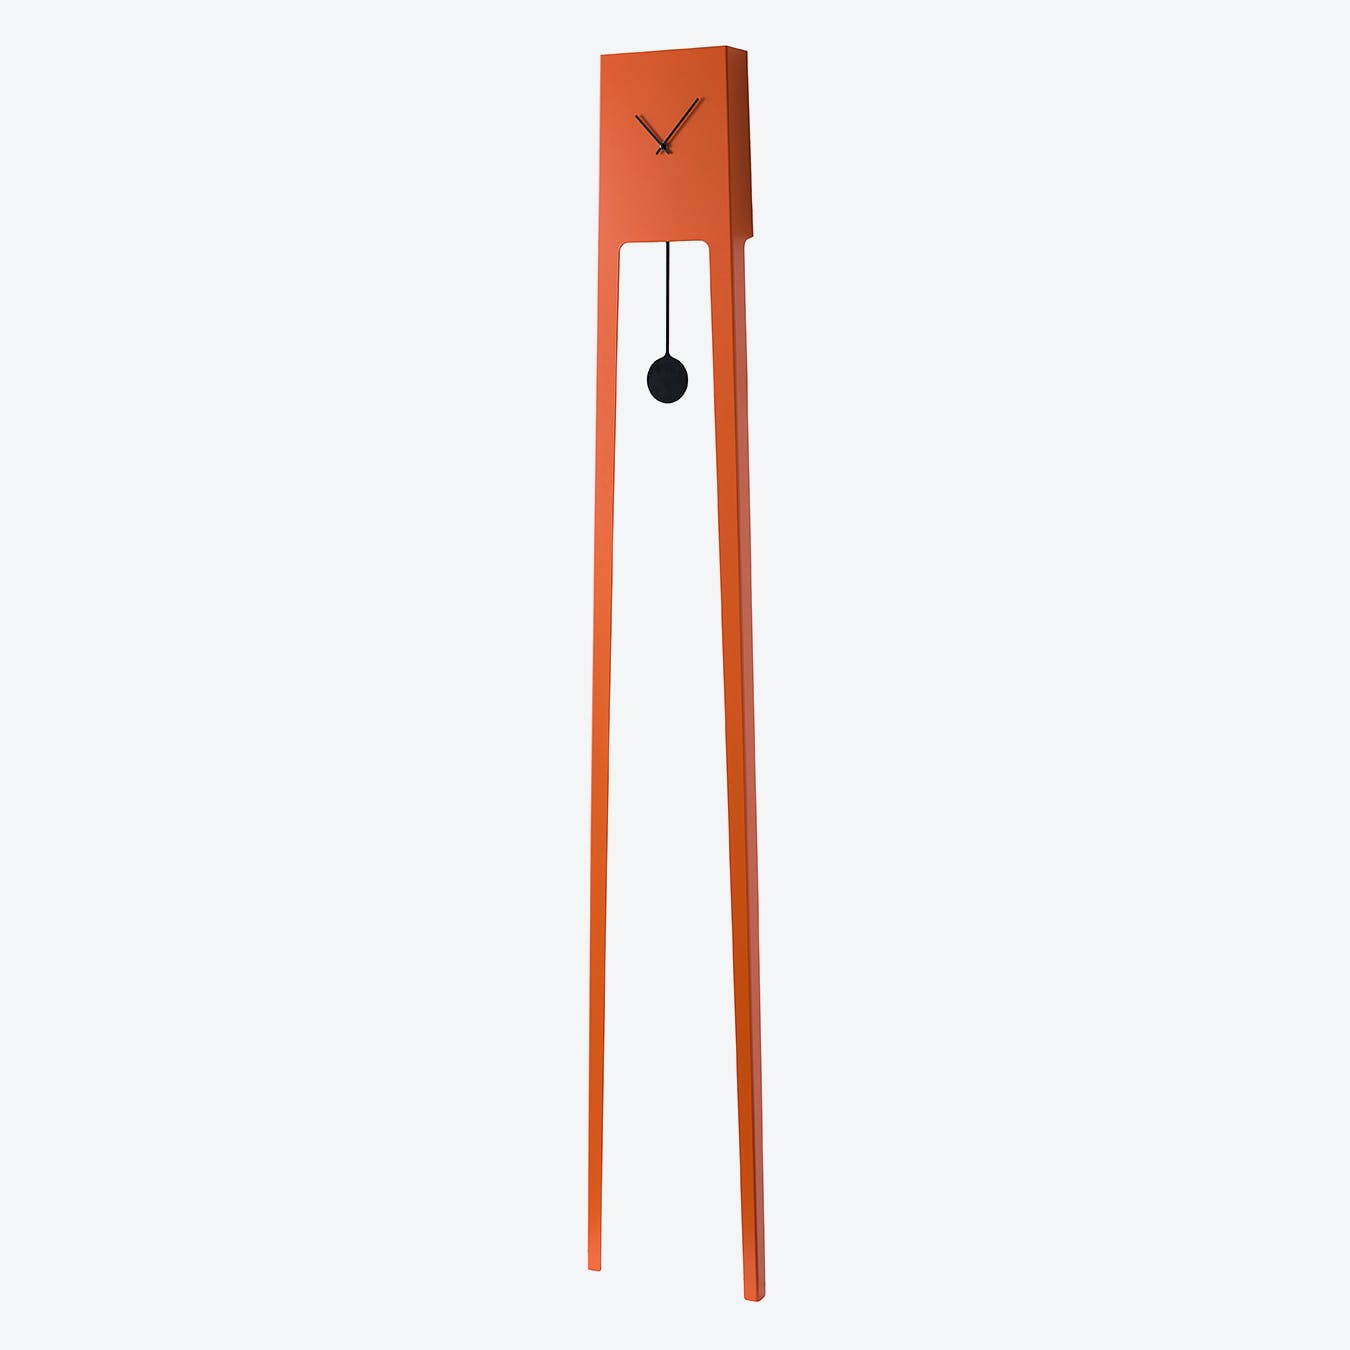 Tiuku Pendulum Clock - Traffic Orange